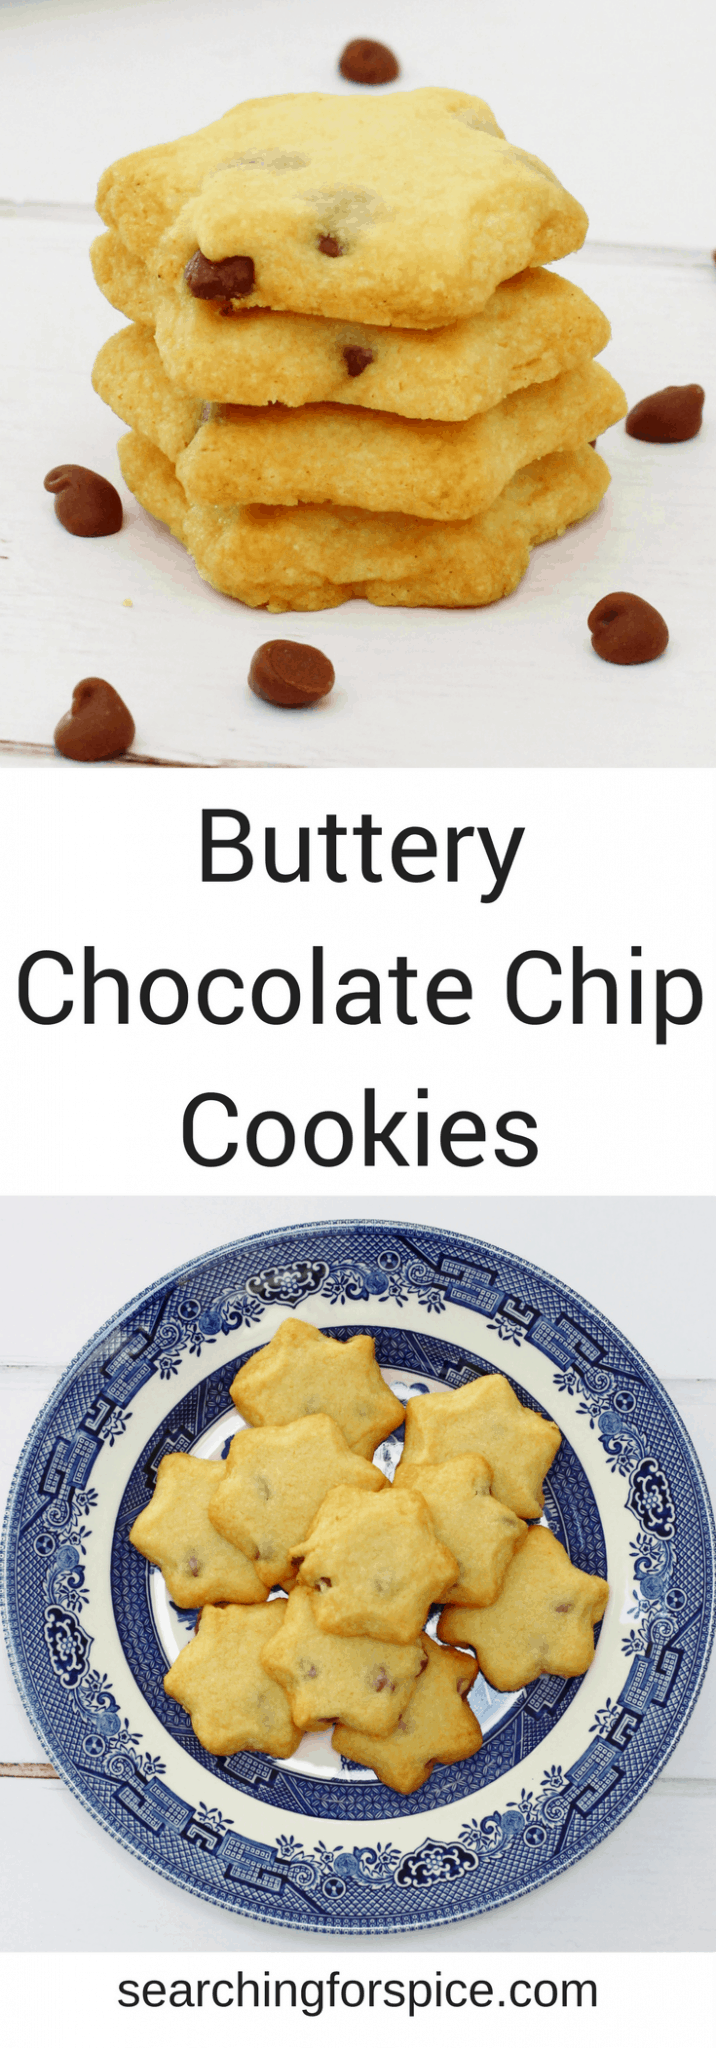 These buttery chocolate chip biscuits are just perfect with a glass of milk or a cup of tea. They also make a great baking activity to do with your kids. #cookies #ChocolateChipCookies #Biscuits #ButteryBiscuits #Snacks #CookingwithKids